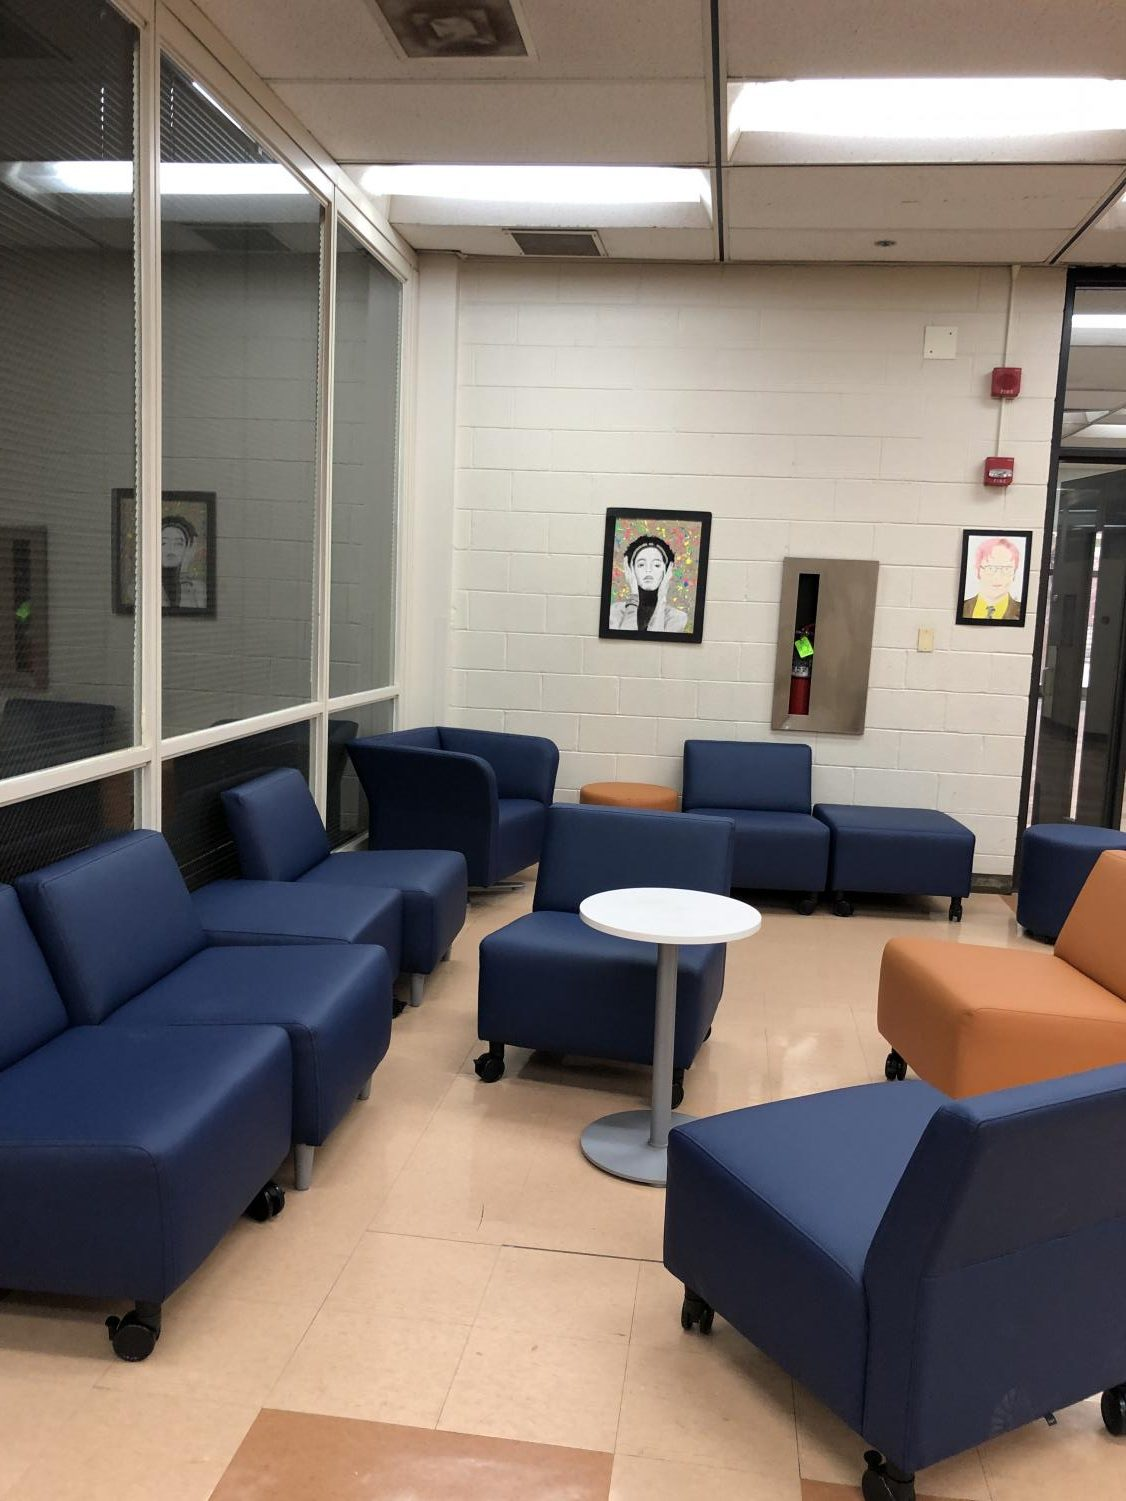 New lounge chairs in Whitney Young Main Building. Photo taken by Naiya Wax-Groot